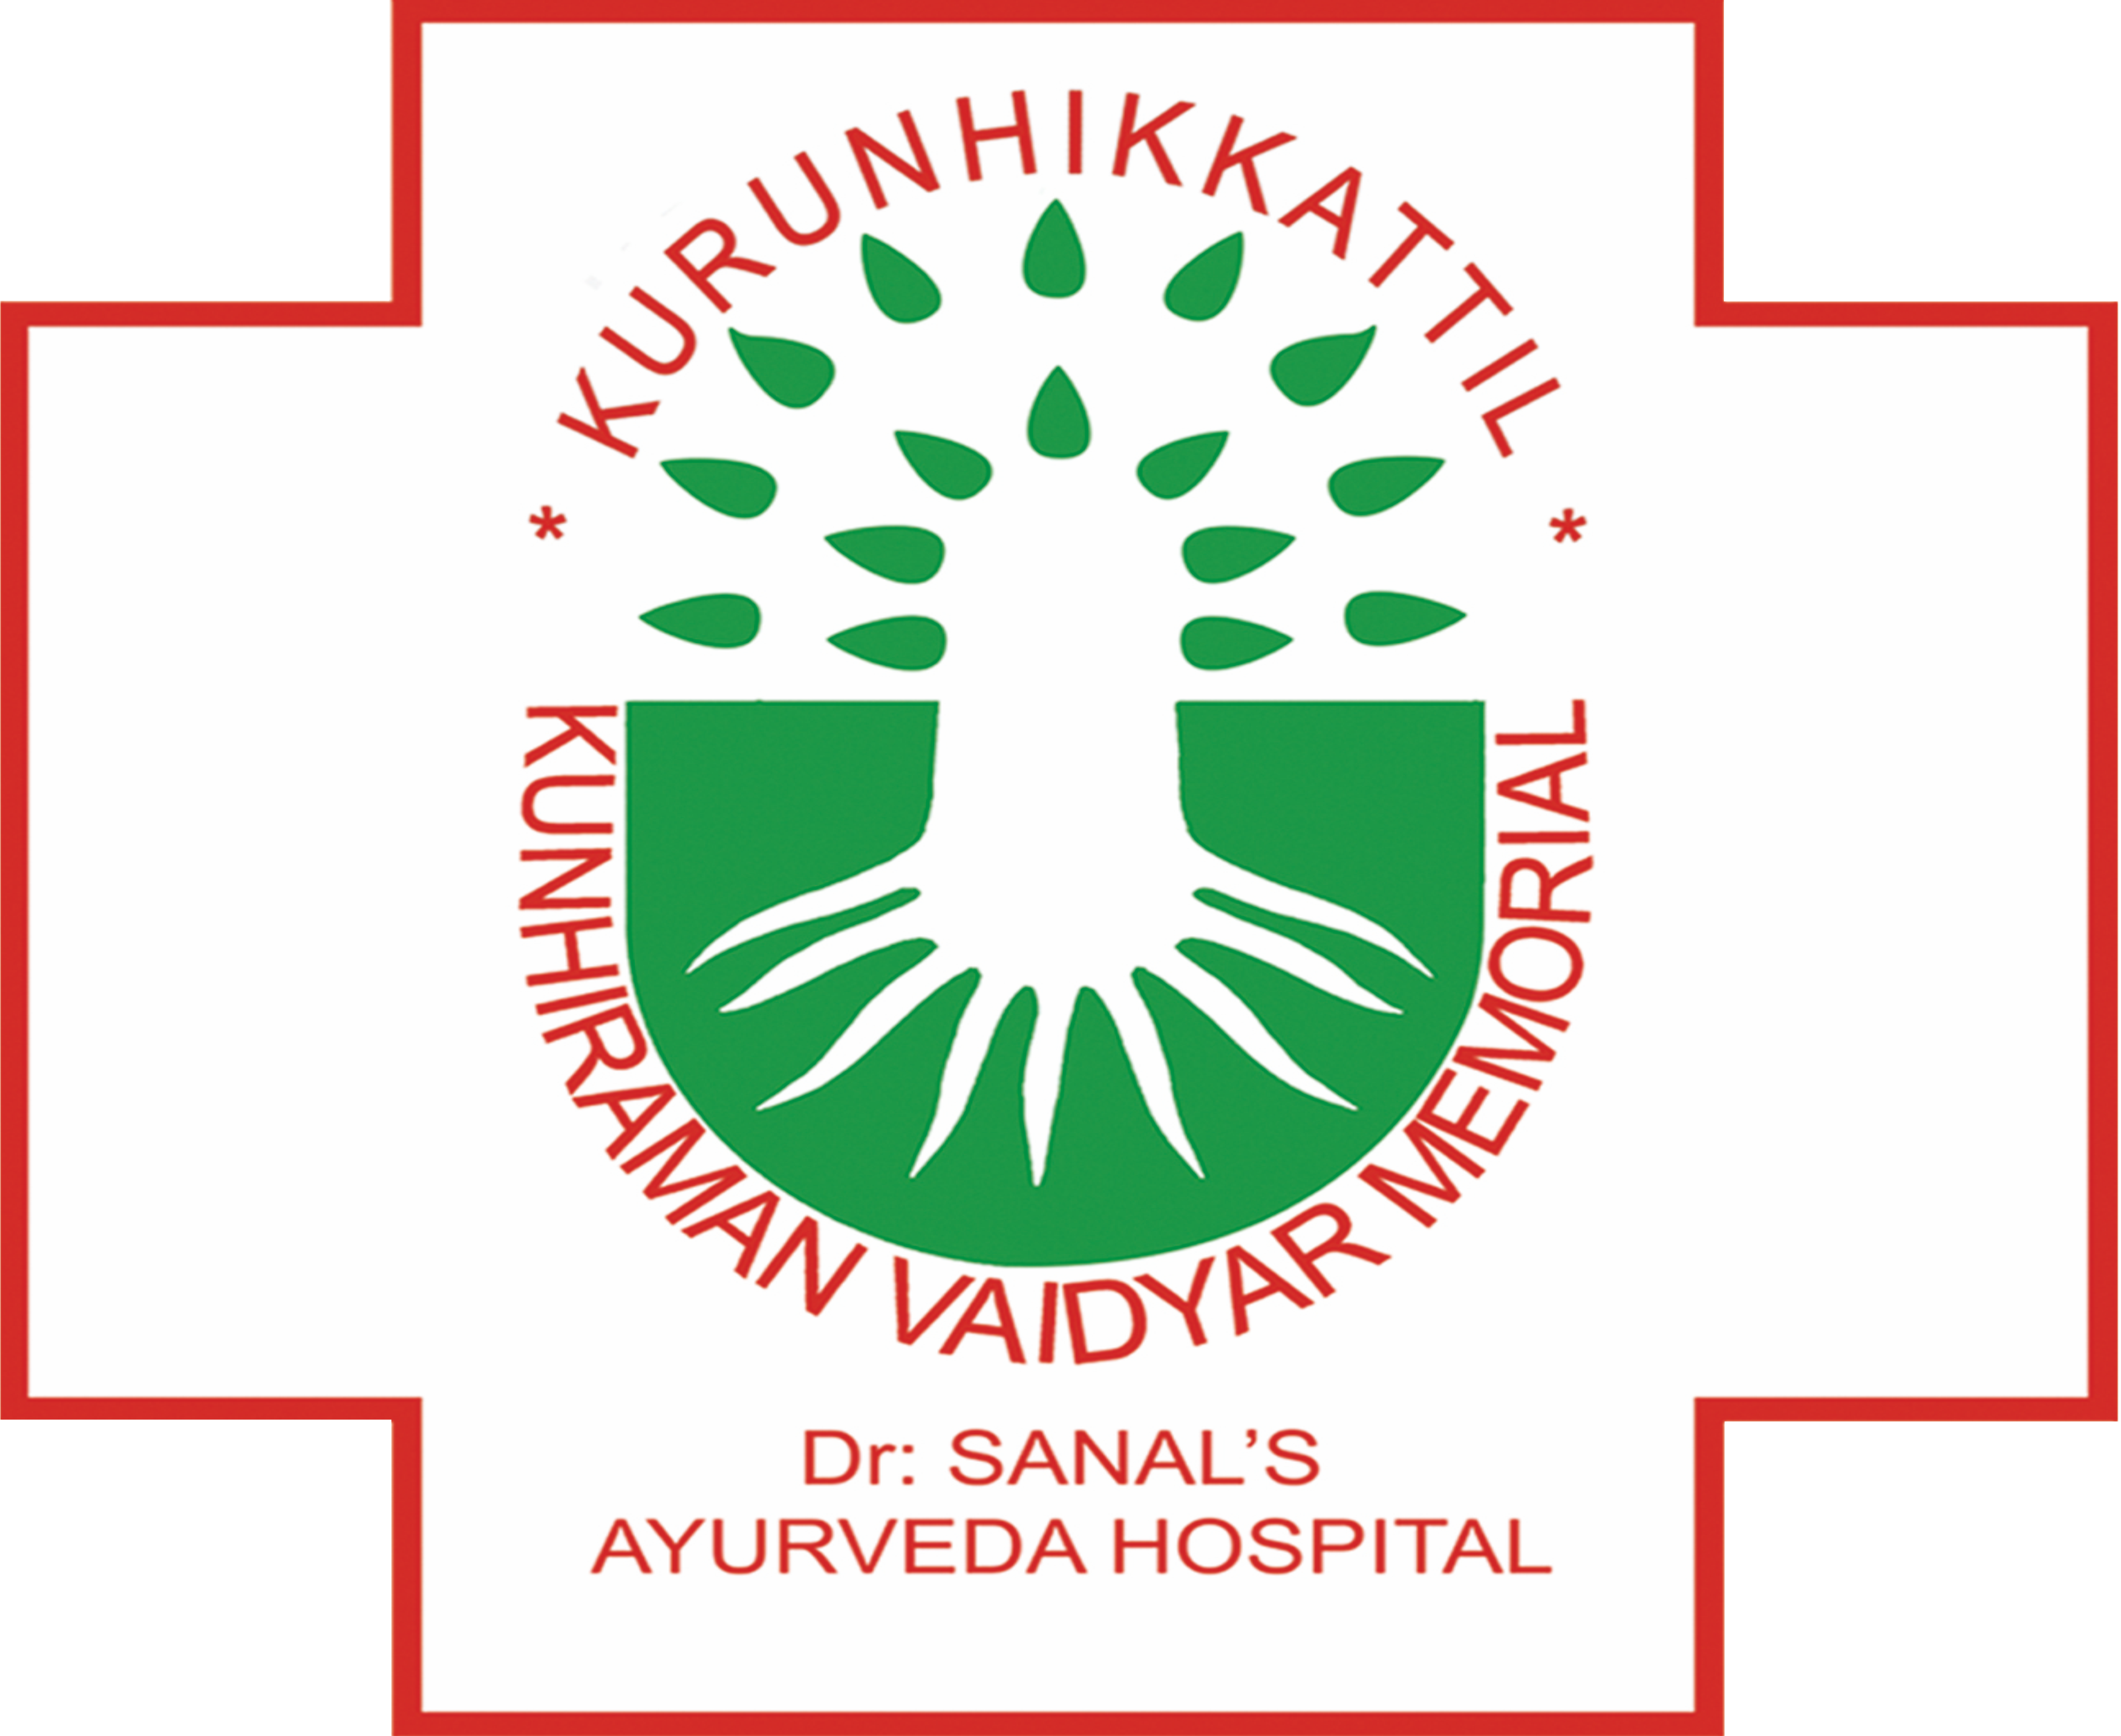 About One of the Best Ayurvedic Hostpital in Kerala